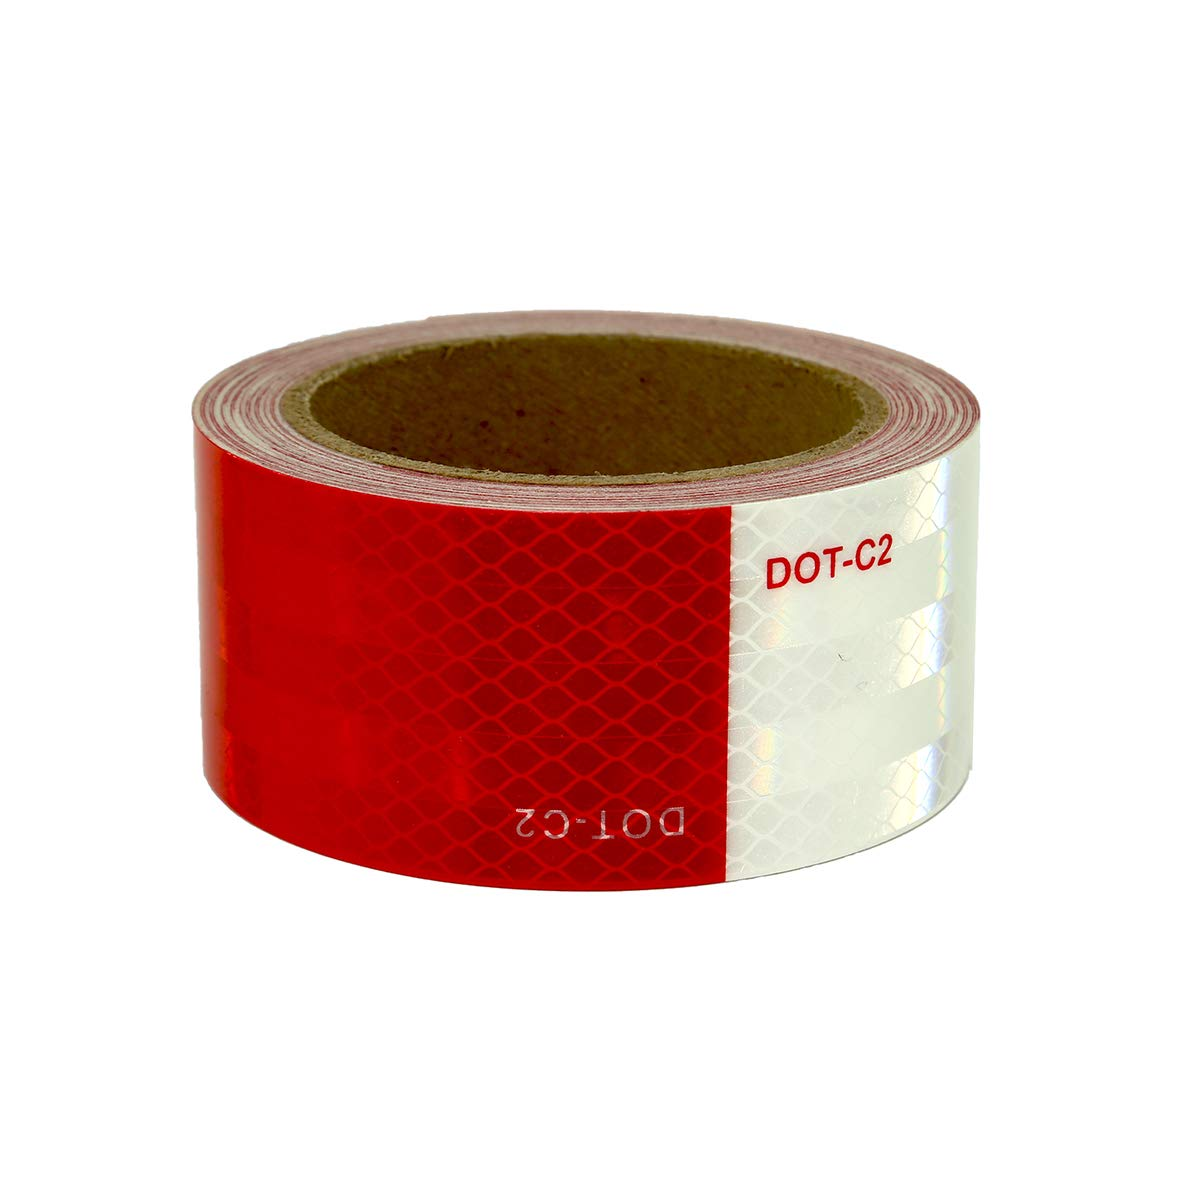 PREMIUM Class-VIII DOT-C2 Reflective Tape (Conspicuity Tape) for Trailer and Truck Safety (2''x30 Ft. with 7''/11'' White/Red Pattern)